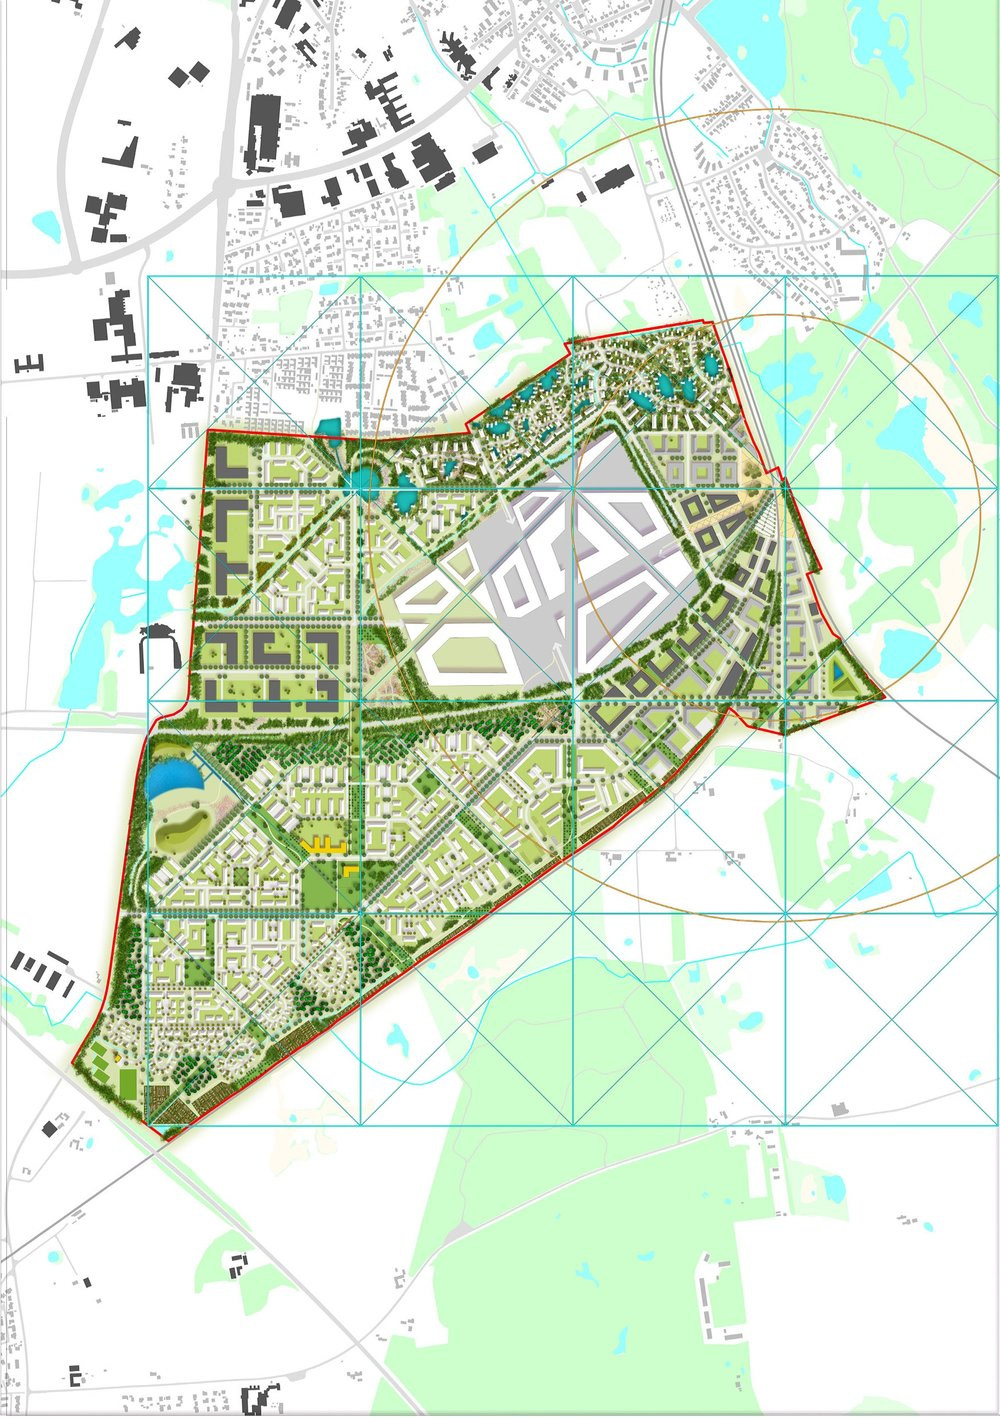 Hillerod Illustrative Plan with grid.jpg